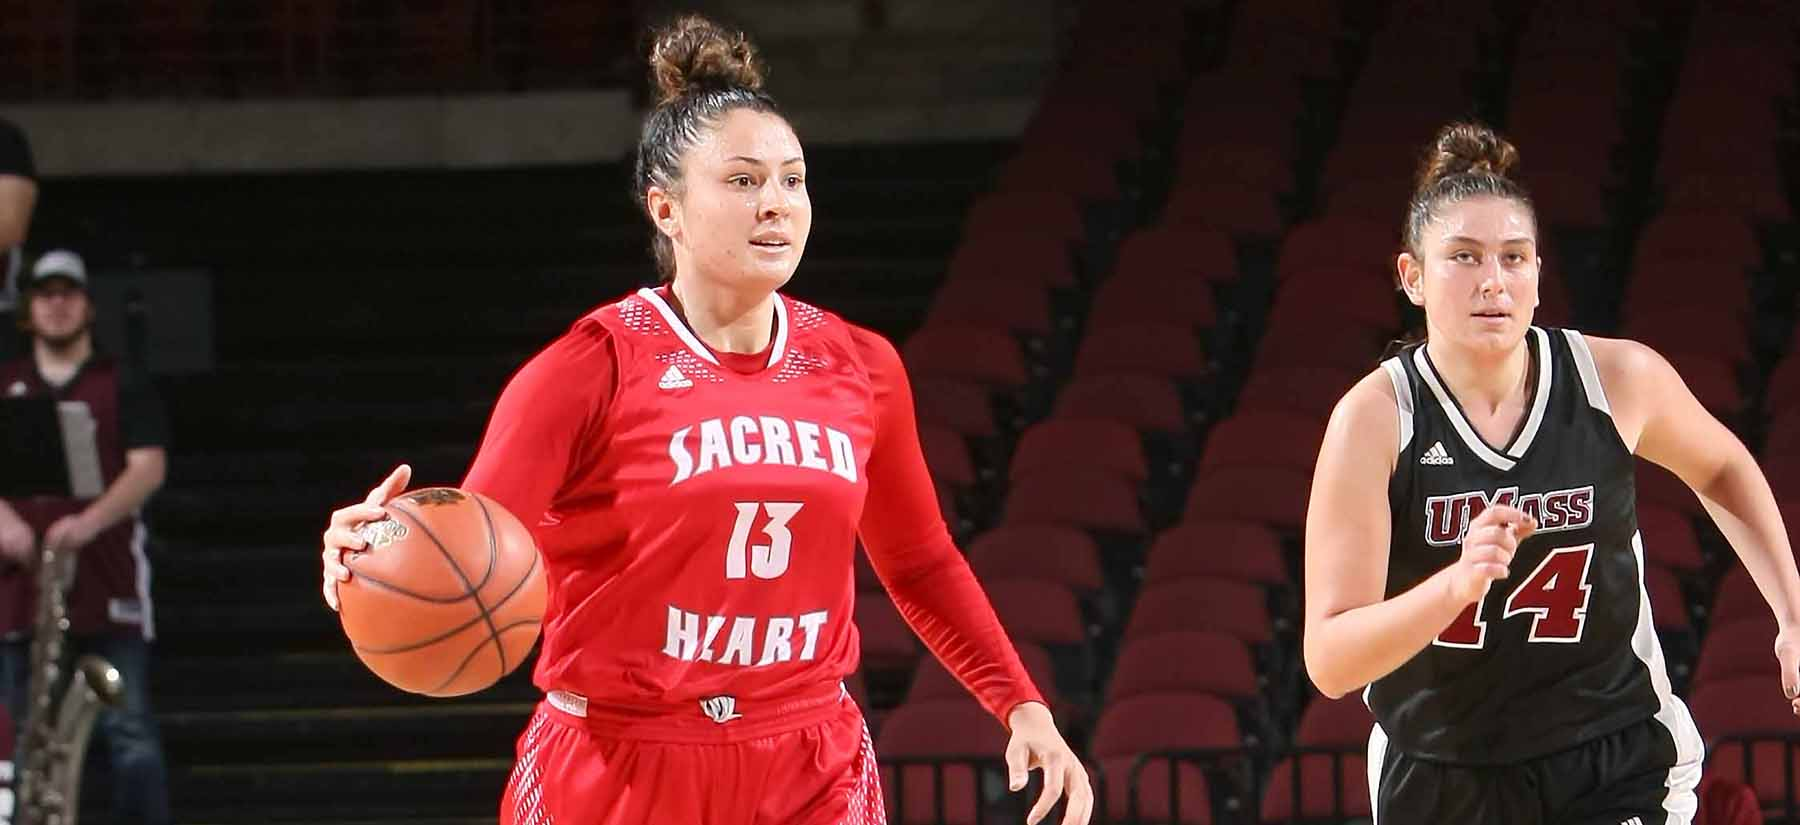 Strong Offensive Effort Lifts Sacred Heart Past New Hampshire 71-60